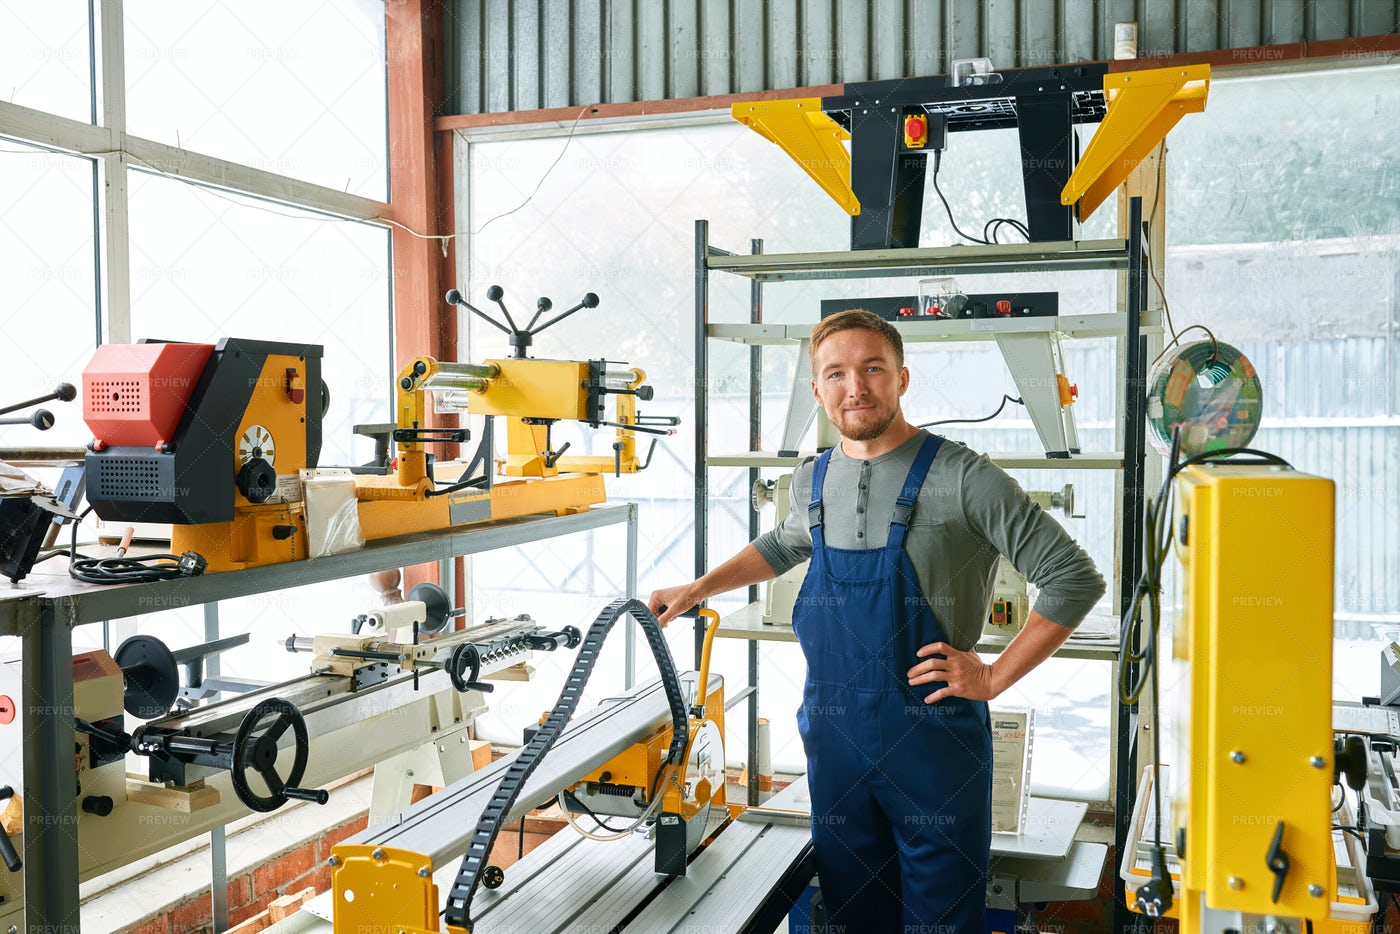 Young Workman Posing At Factory: Stock Photos